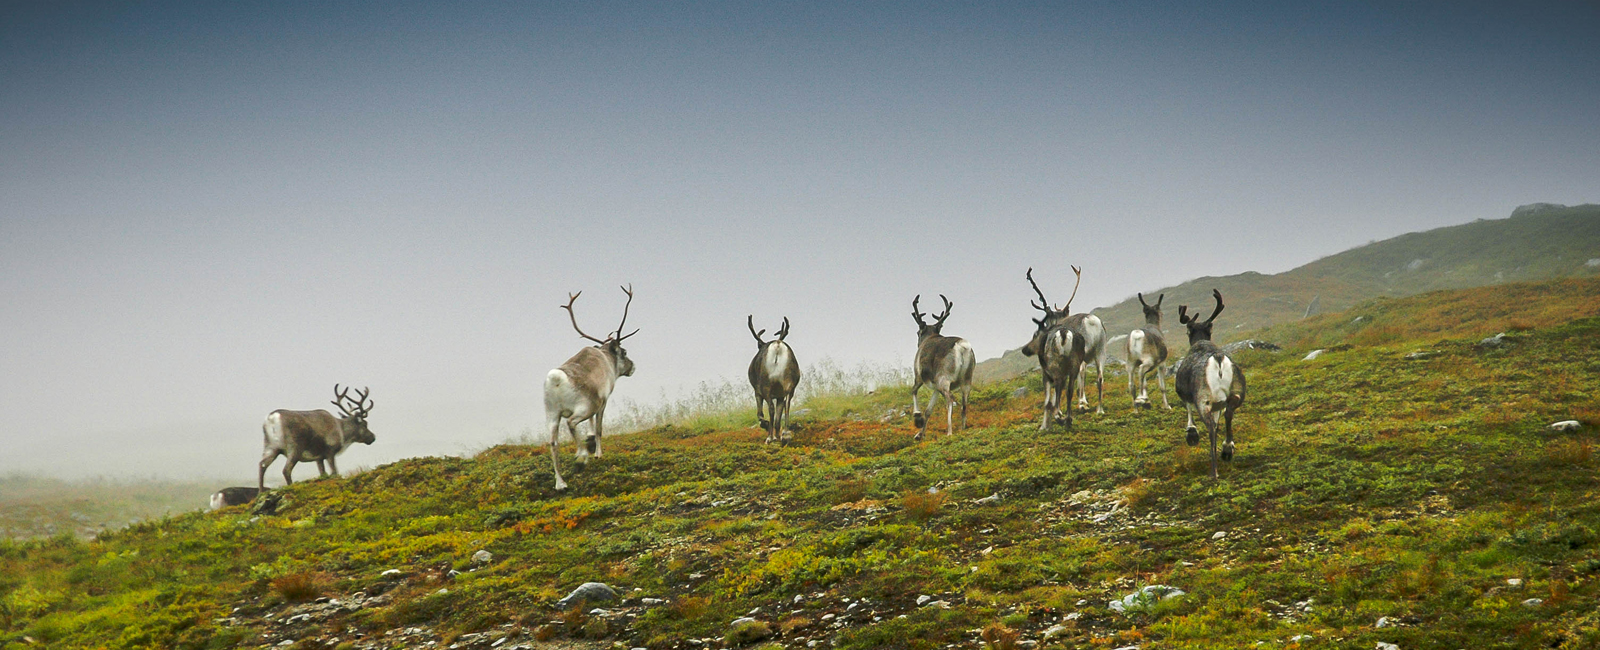 Reindeer in the Snåsa mountains. Photo: Olgeir Haug